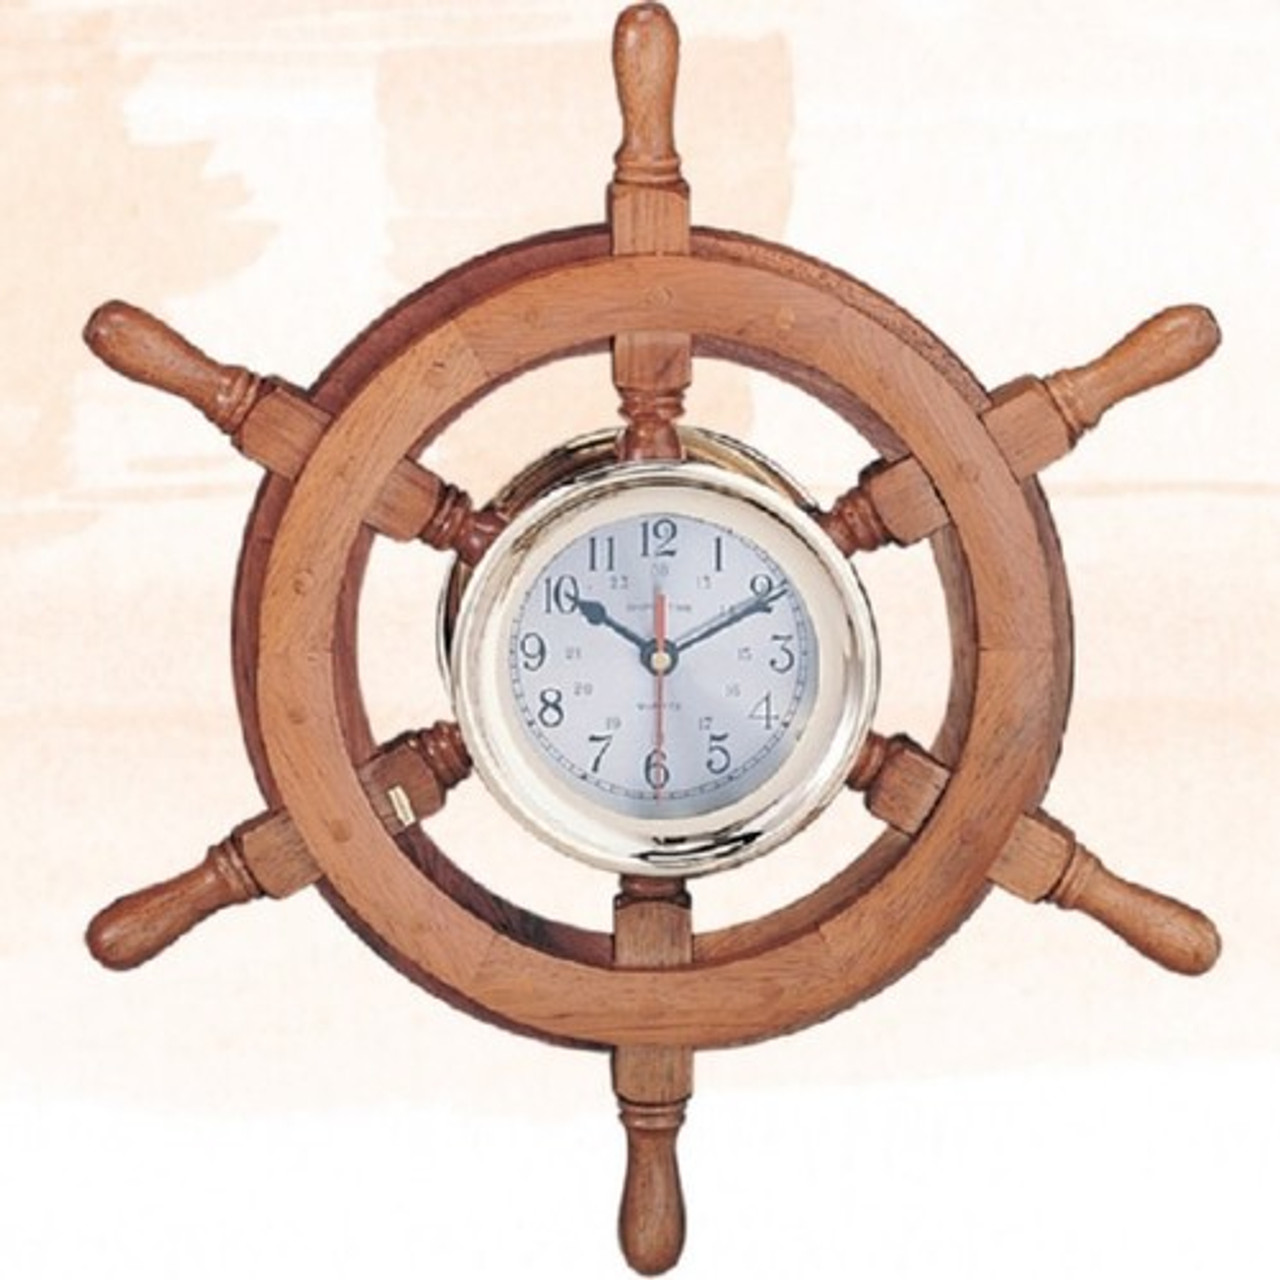 Captain Wheel Clock with Lacquer Coating  - 30""